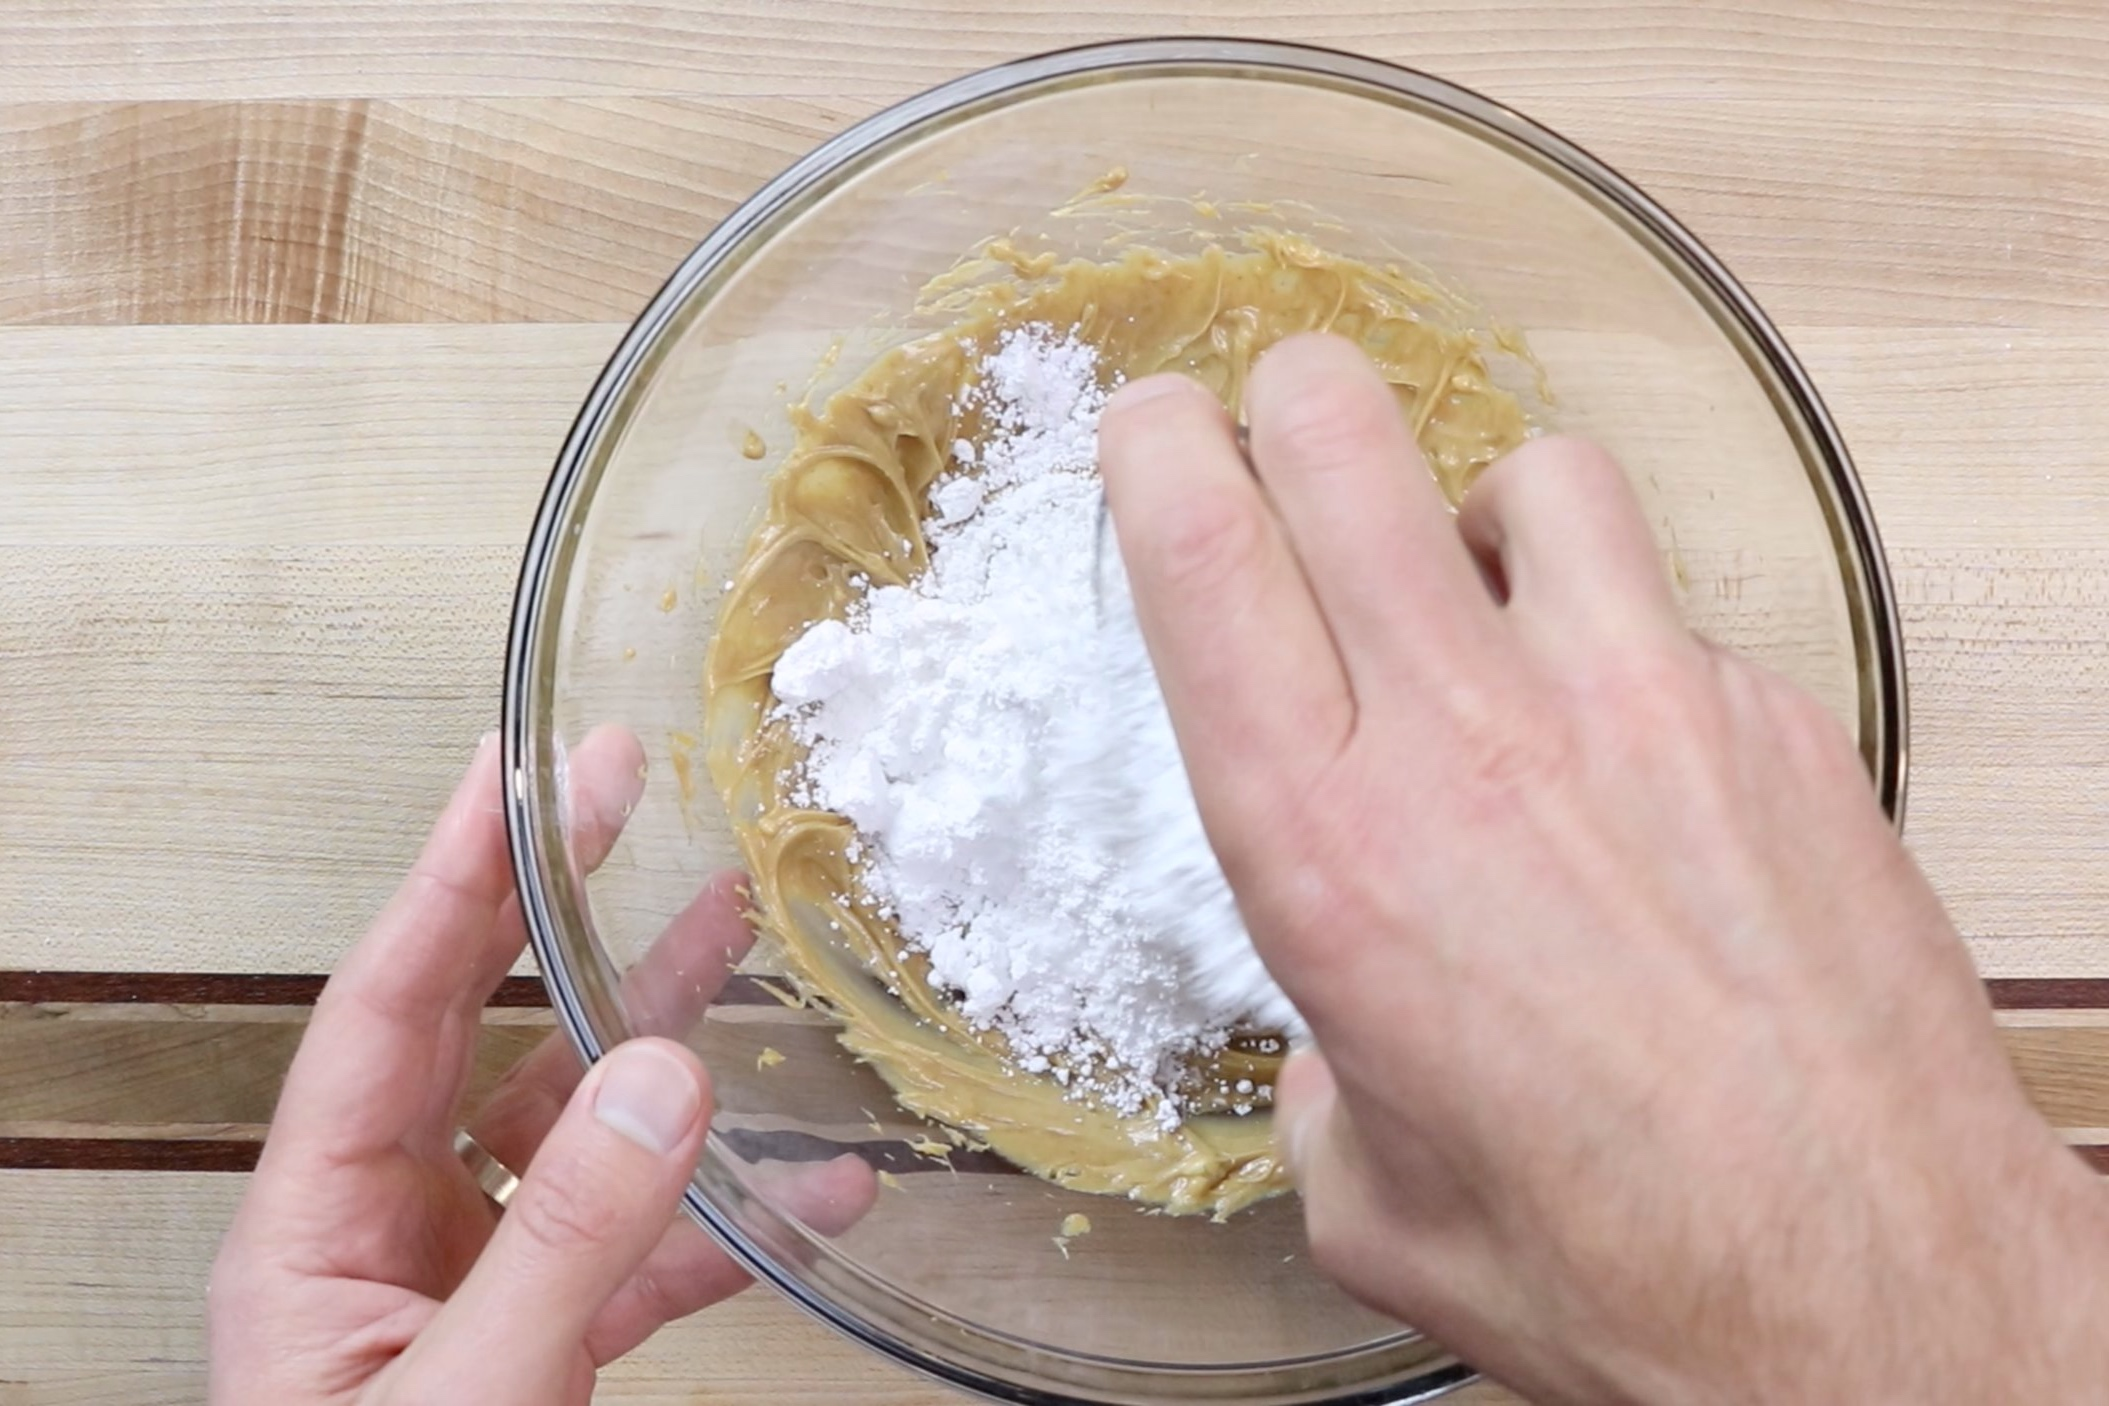 10. Add half of the powdered sugar and mix on low scraping down the sides when necessary. -